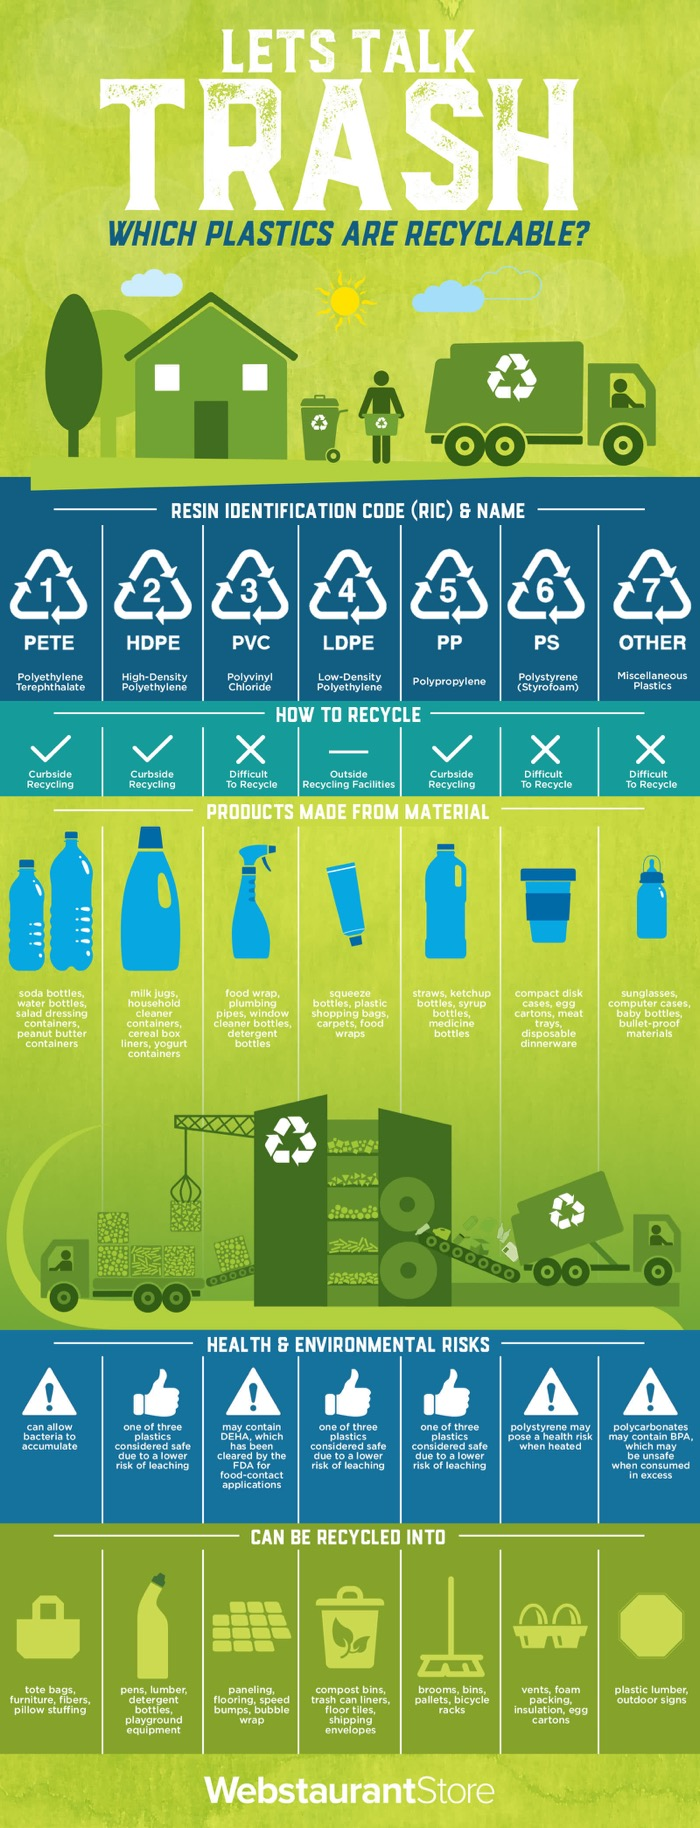 Fibrex Group - Let's Talk Trash Infographic